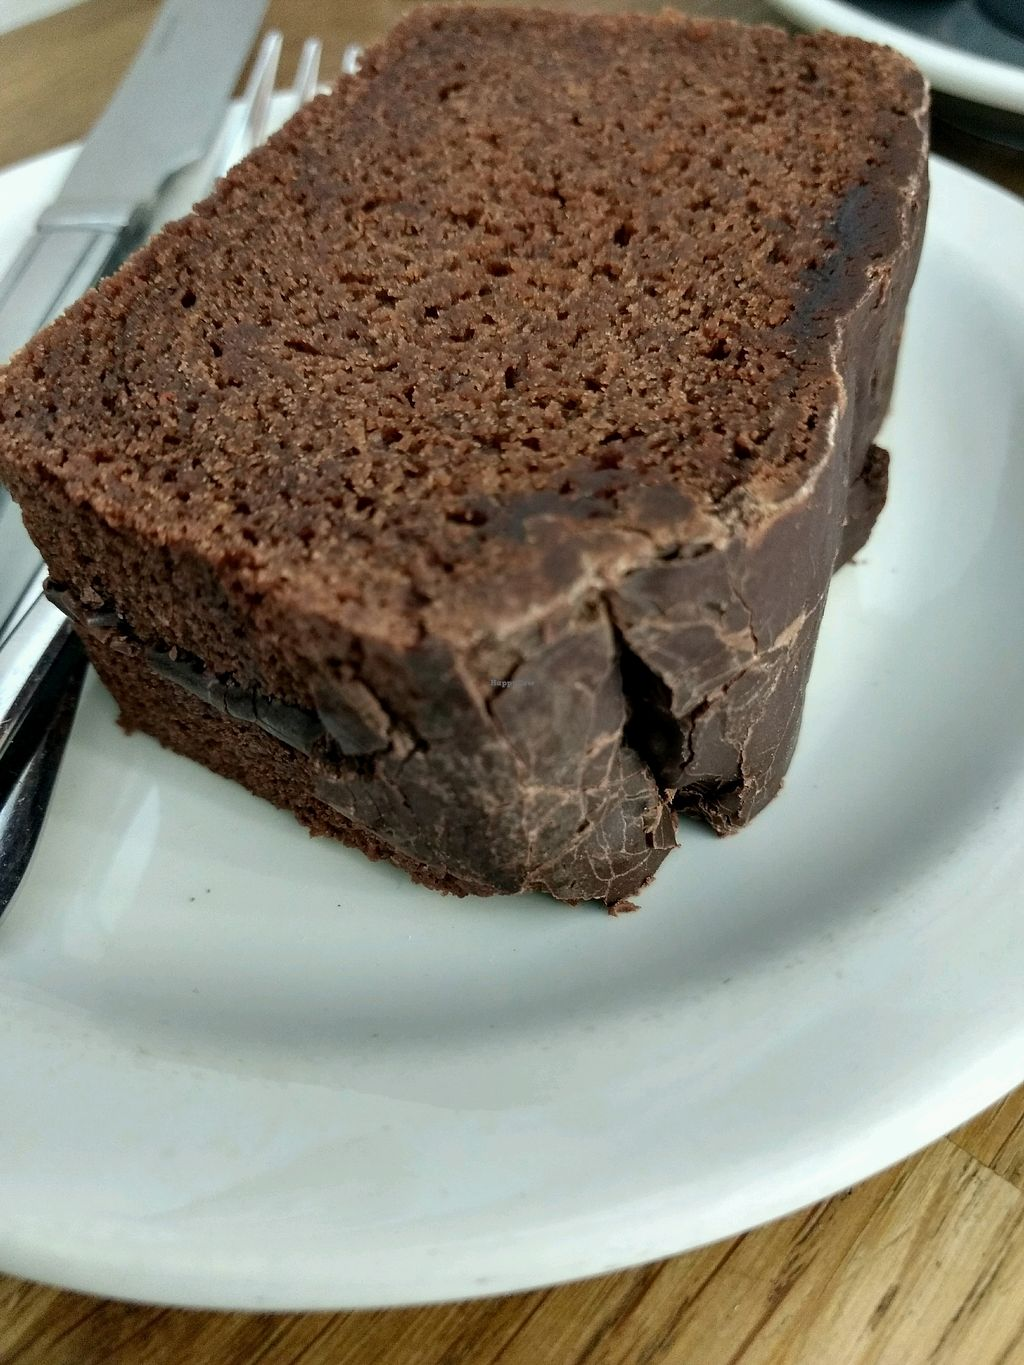 """Photo of Castello Coffee - Castle St  by <a href=""""/members/profile/craigmc"""">craigmc</a> <br/>spicy cake <br/> March 24, 2018  - <a href='/contact/abuse/image/80362/375384'>Report</a>"""